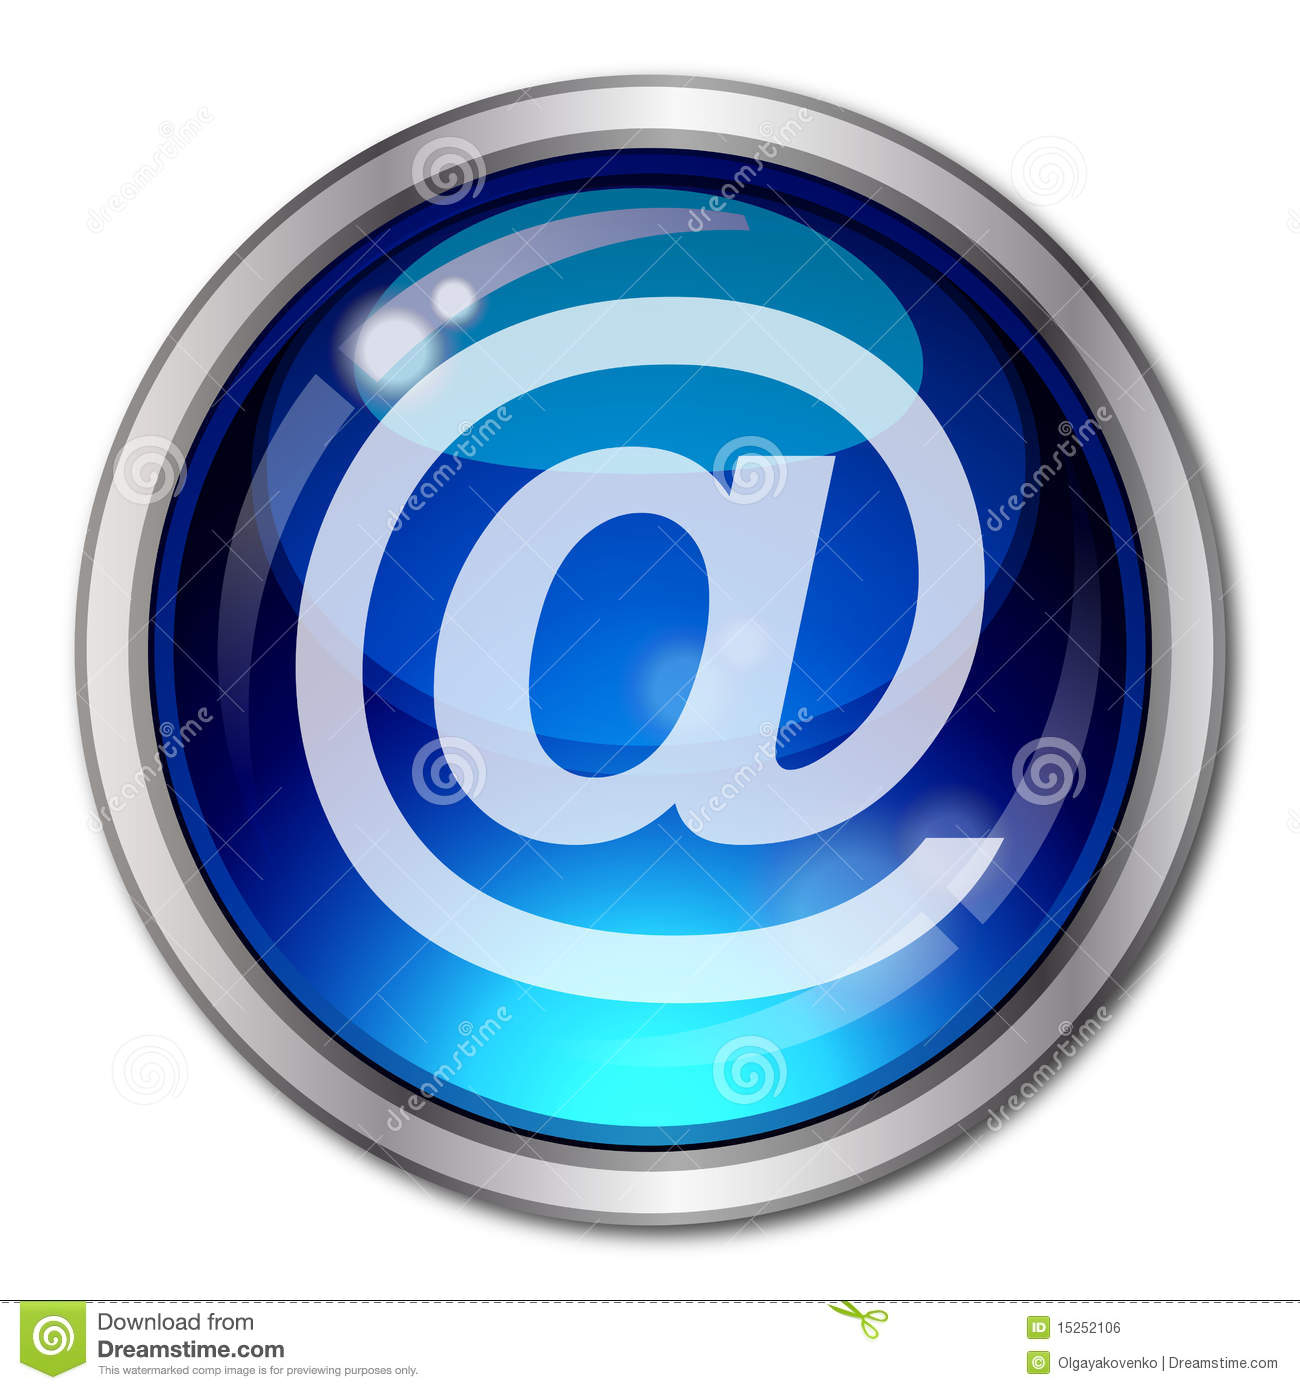 Email Button Royalty Free Stock Image - Image: 15252106